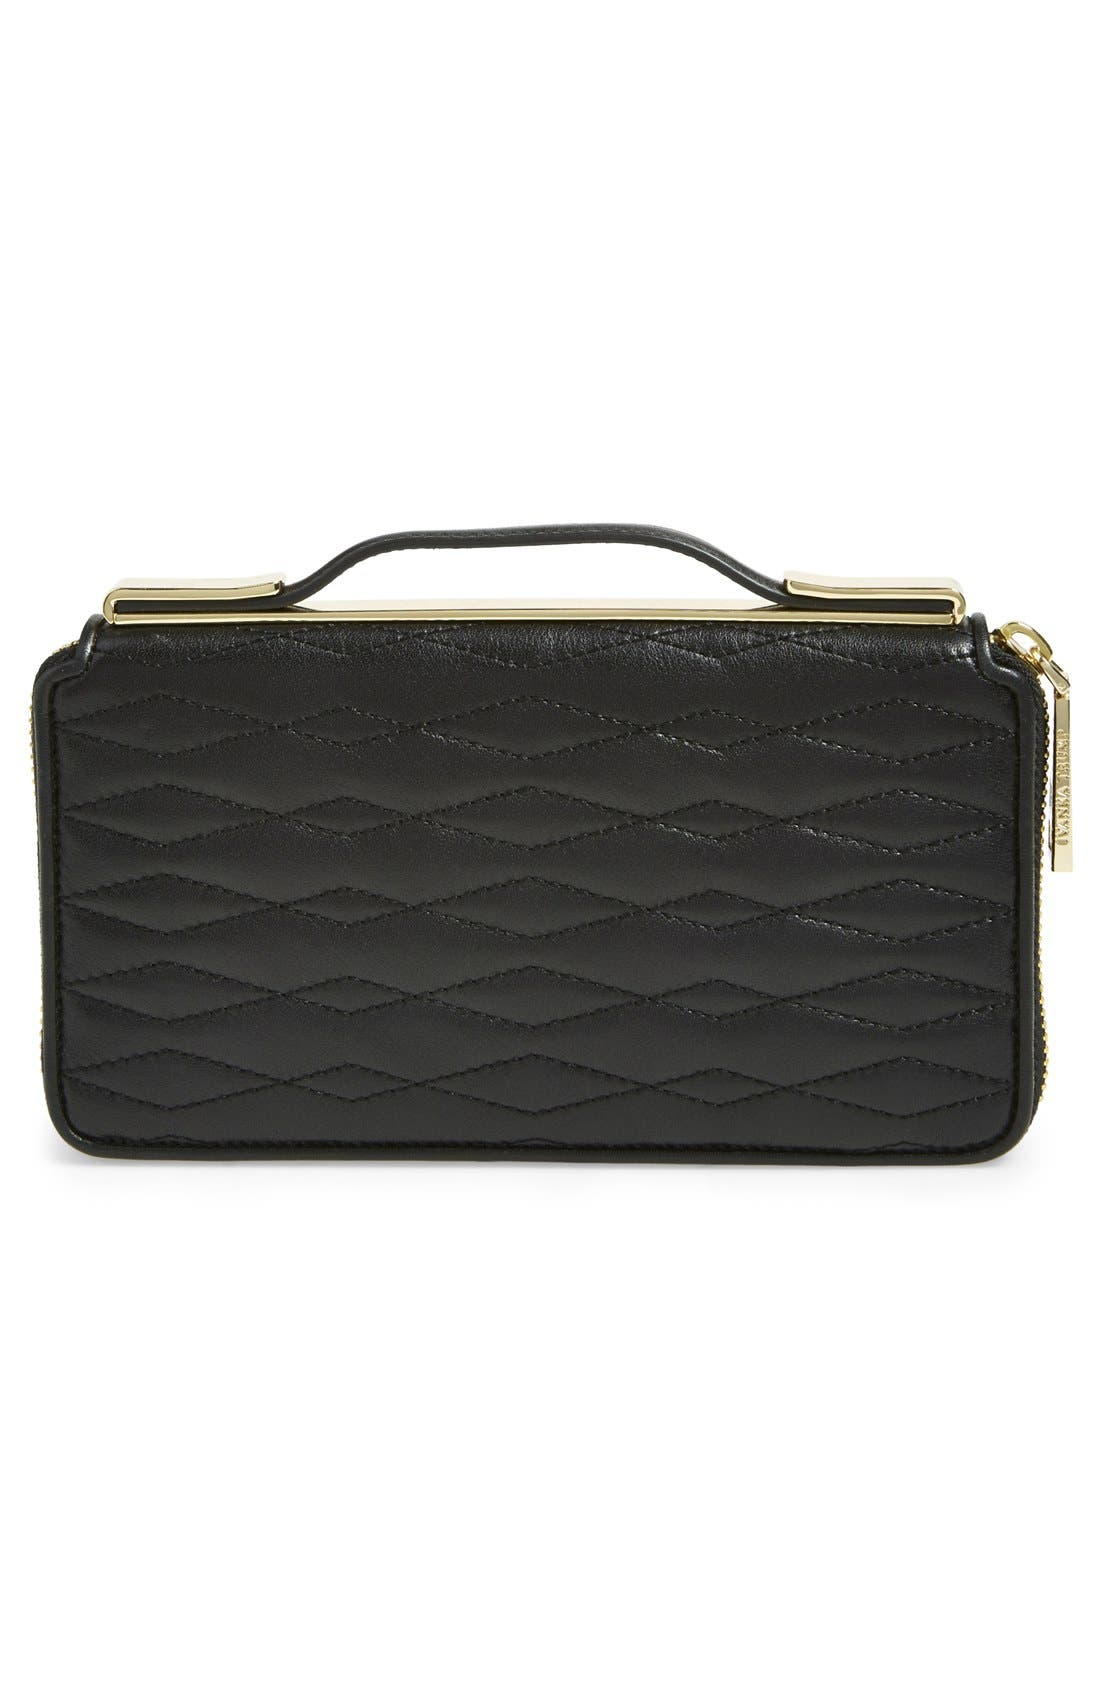 Alternate Image 3  - Ivanka Trump 'Bedminster' Leather Clutch